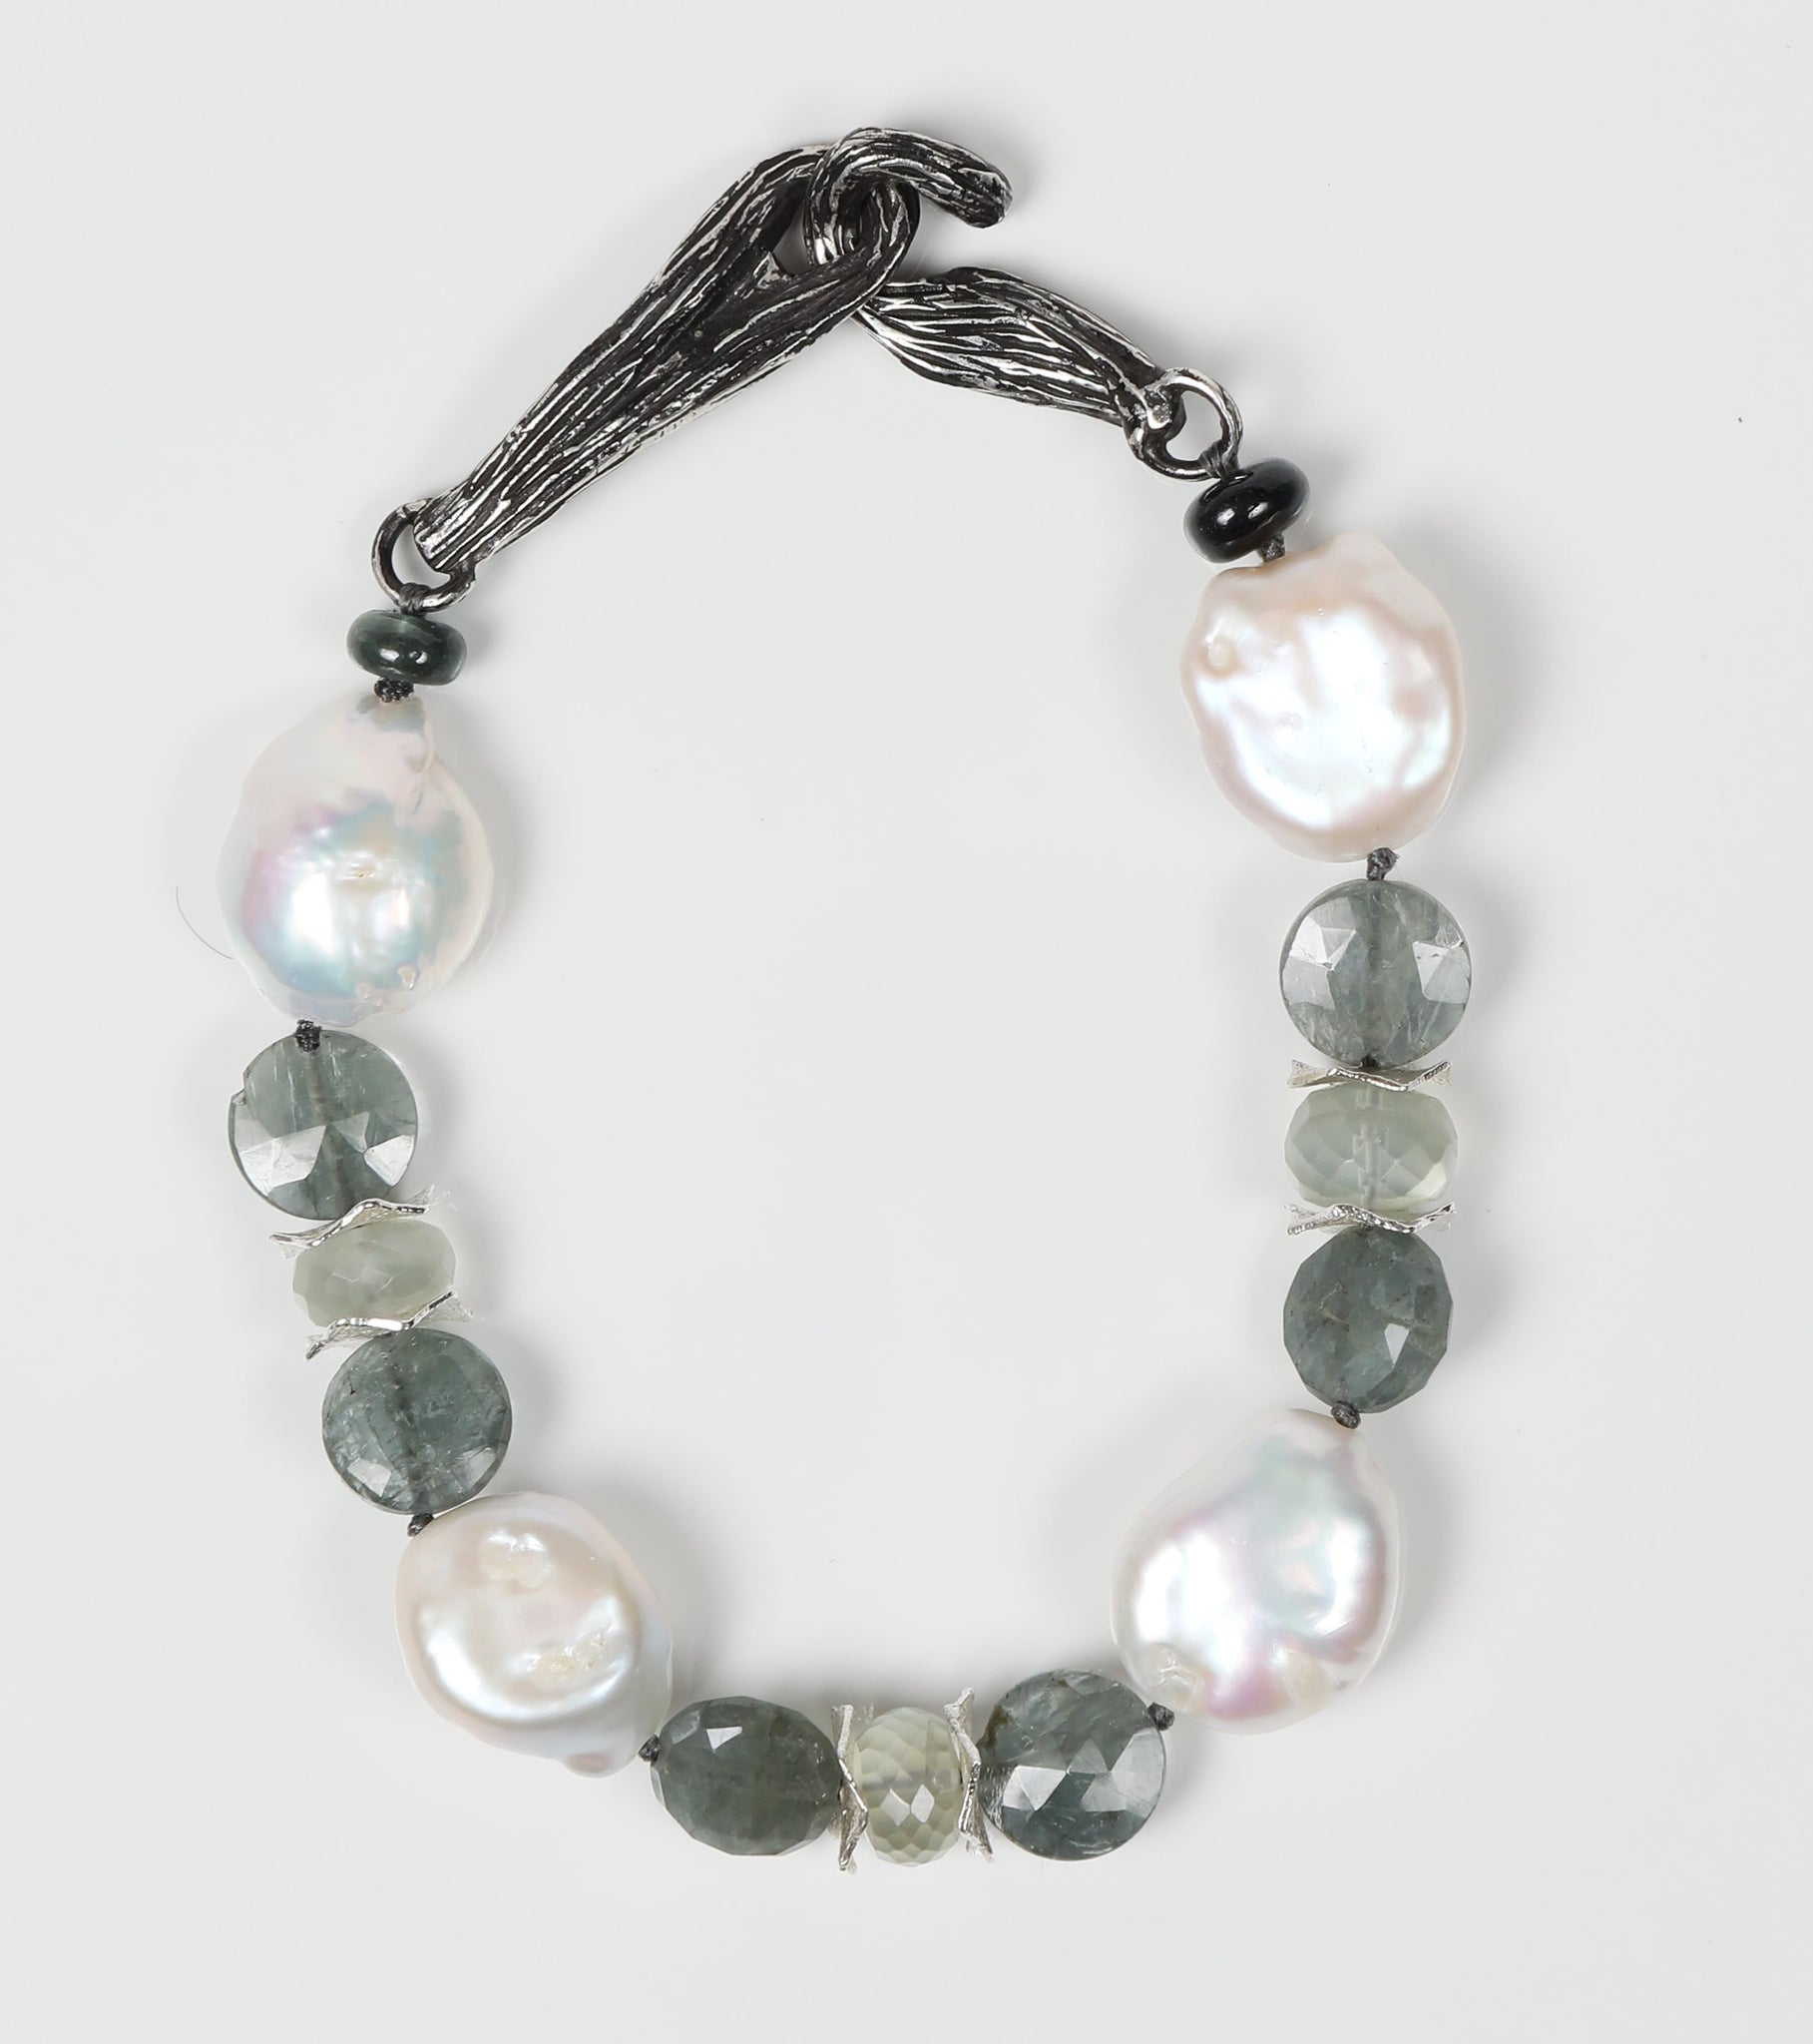 "White Orchid Studios | Made in the USA | Handcrafted couture jewelry inspired by nature. |  Beautiful freshwater pearls bounded by our hand-crafted sterling spacers, faceted moss aqua, and Ceylon moonstone.  Finished with our hand-carved, sterling vanilla bean clasp completes the bracelet, 9"" $482"